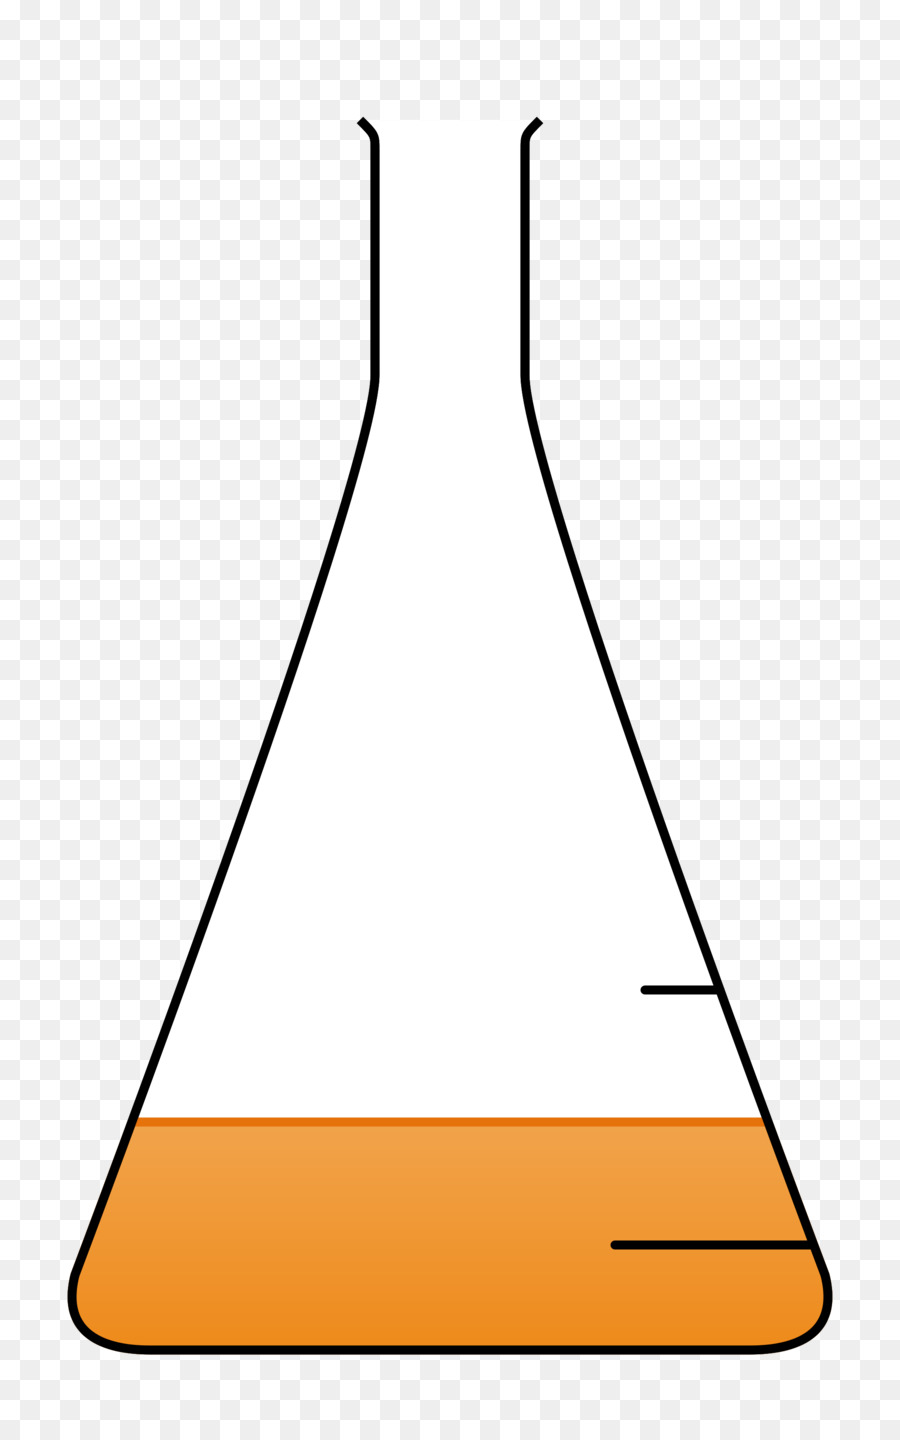 Beaker clipart triangular. Cartoon glass triangle